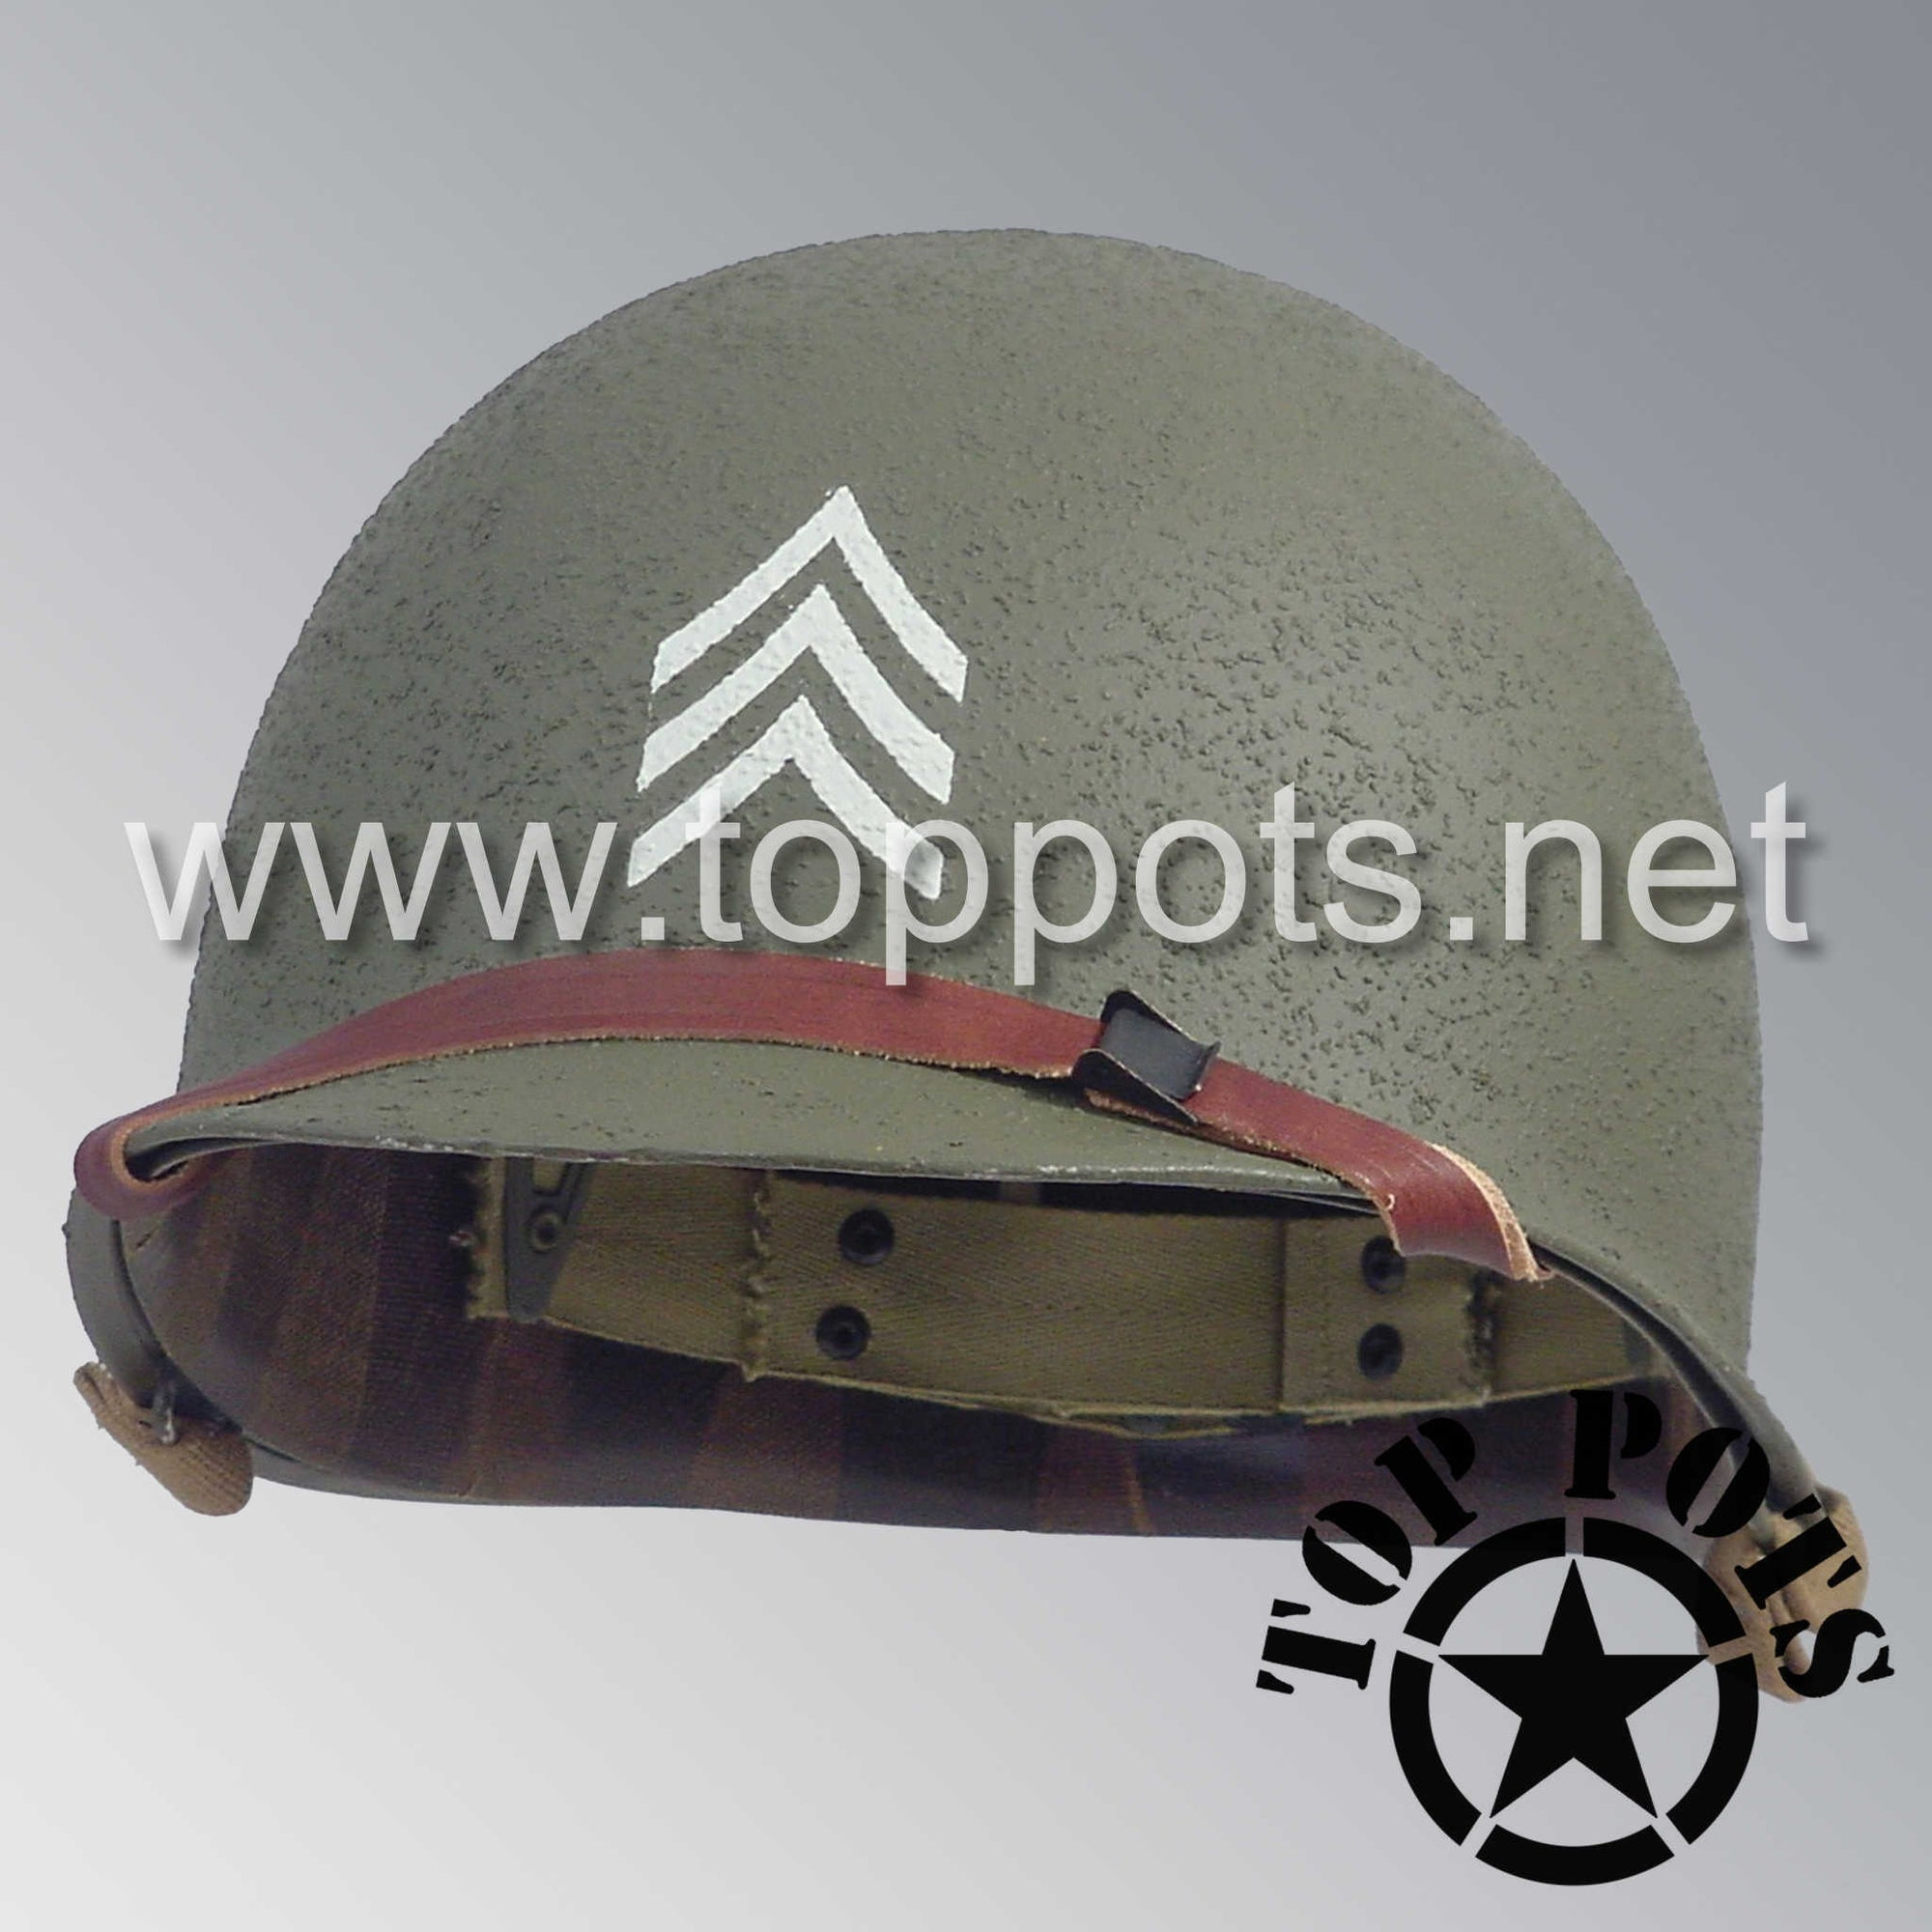 Image 1 of WWII US Army Restored Original M1 Infantry Helmet Swivel Bale Shell and Liner with 2nd Ranger NCO Emblem